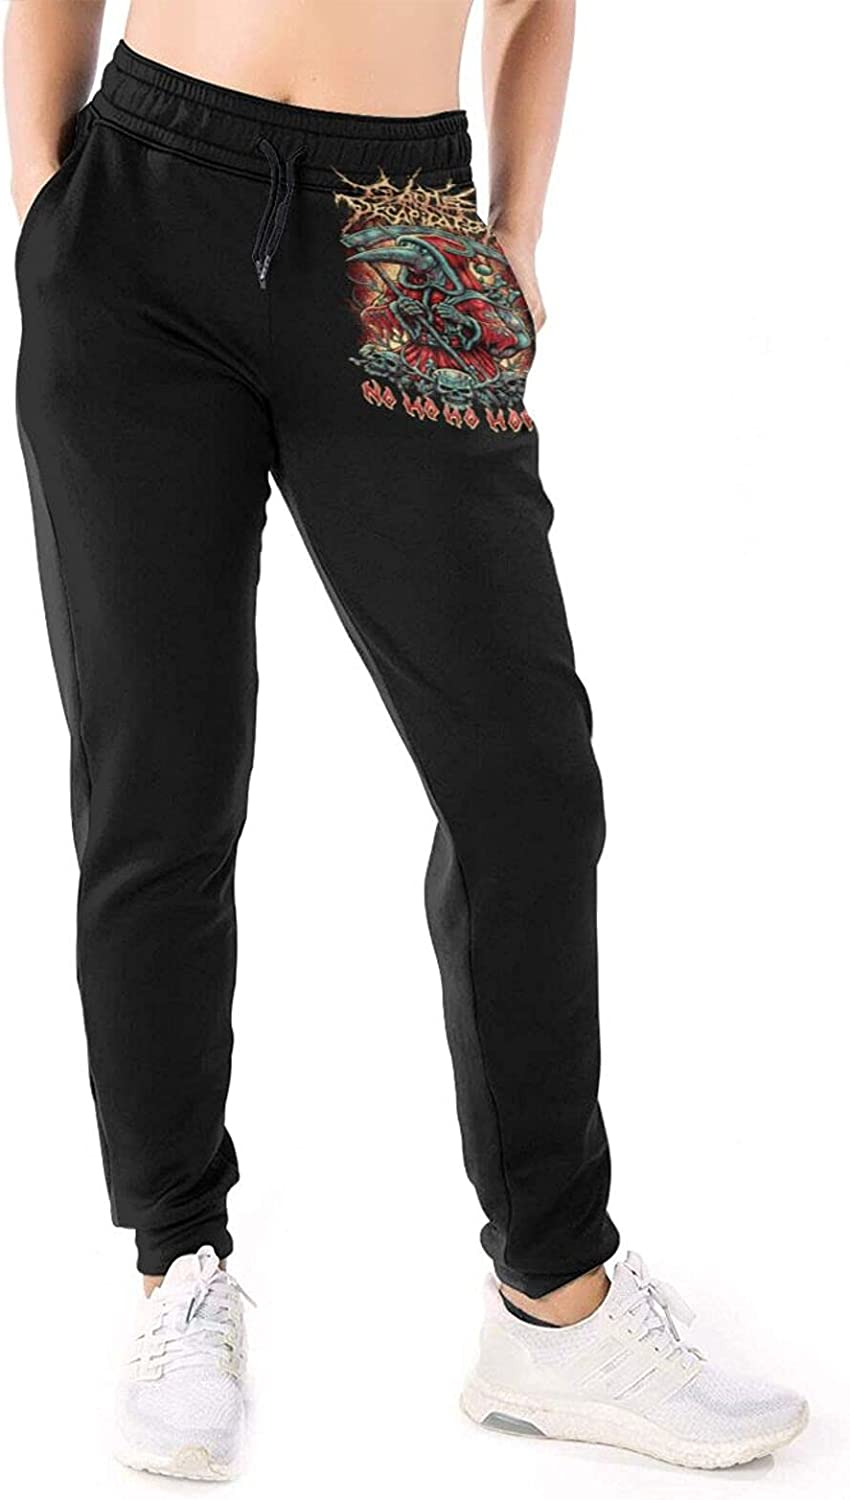 RDCLFJENQ Cattle Decapitation Pants for Women's Sport Pull On Dr